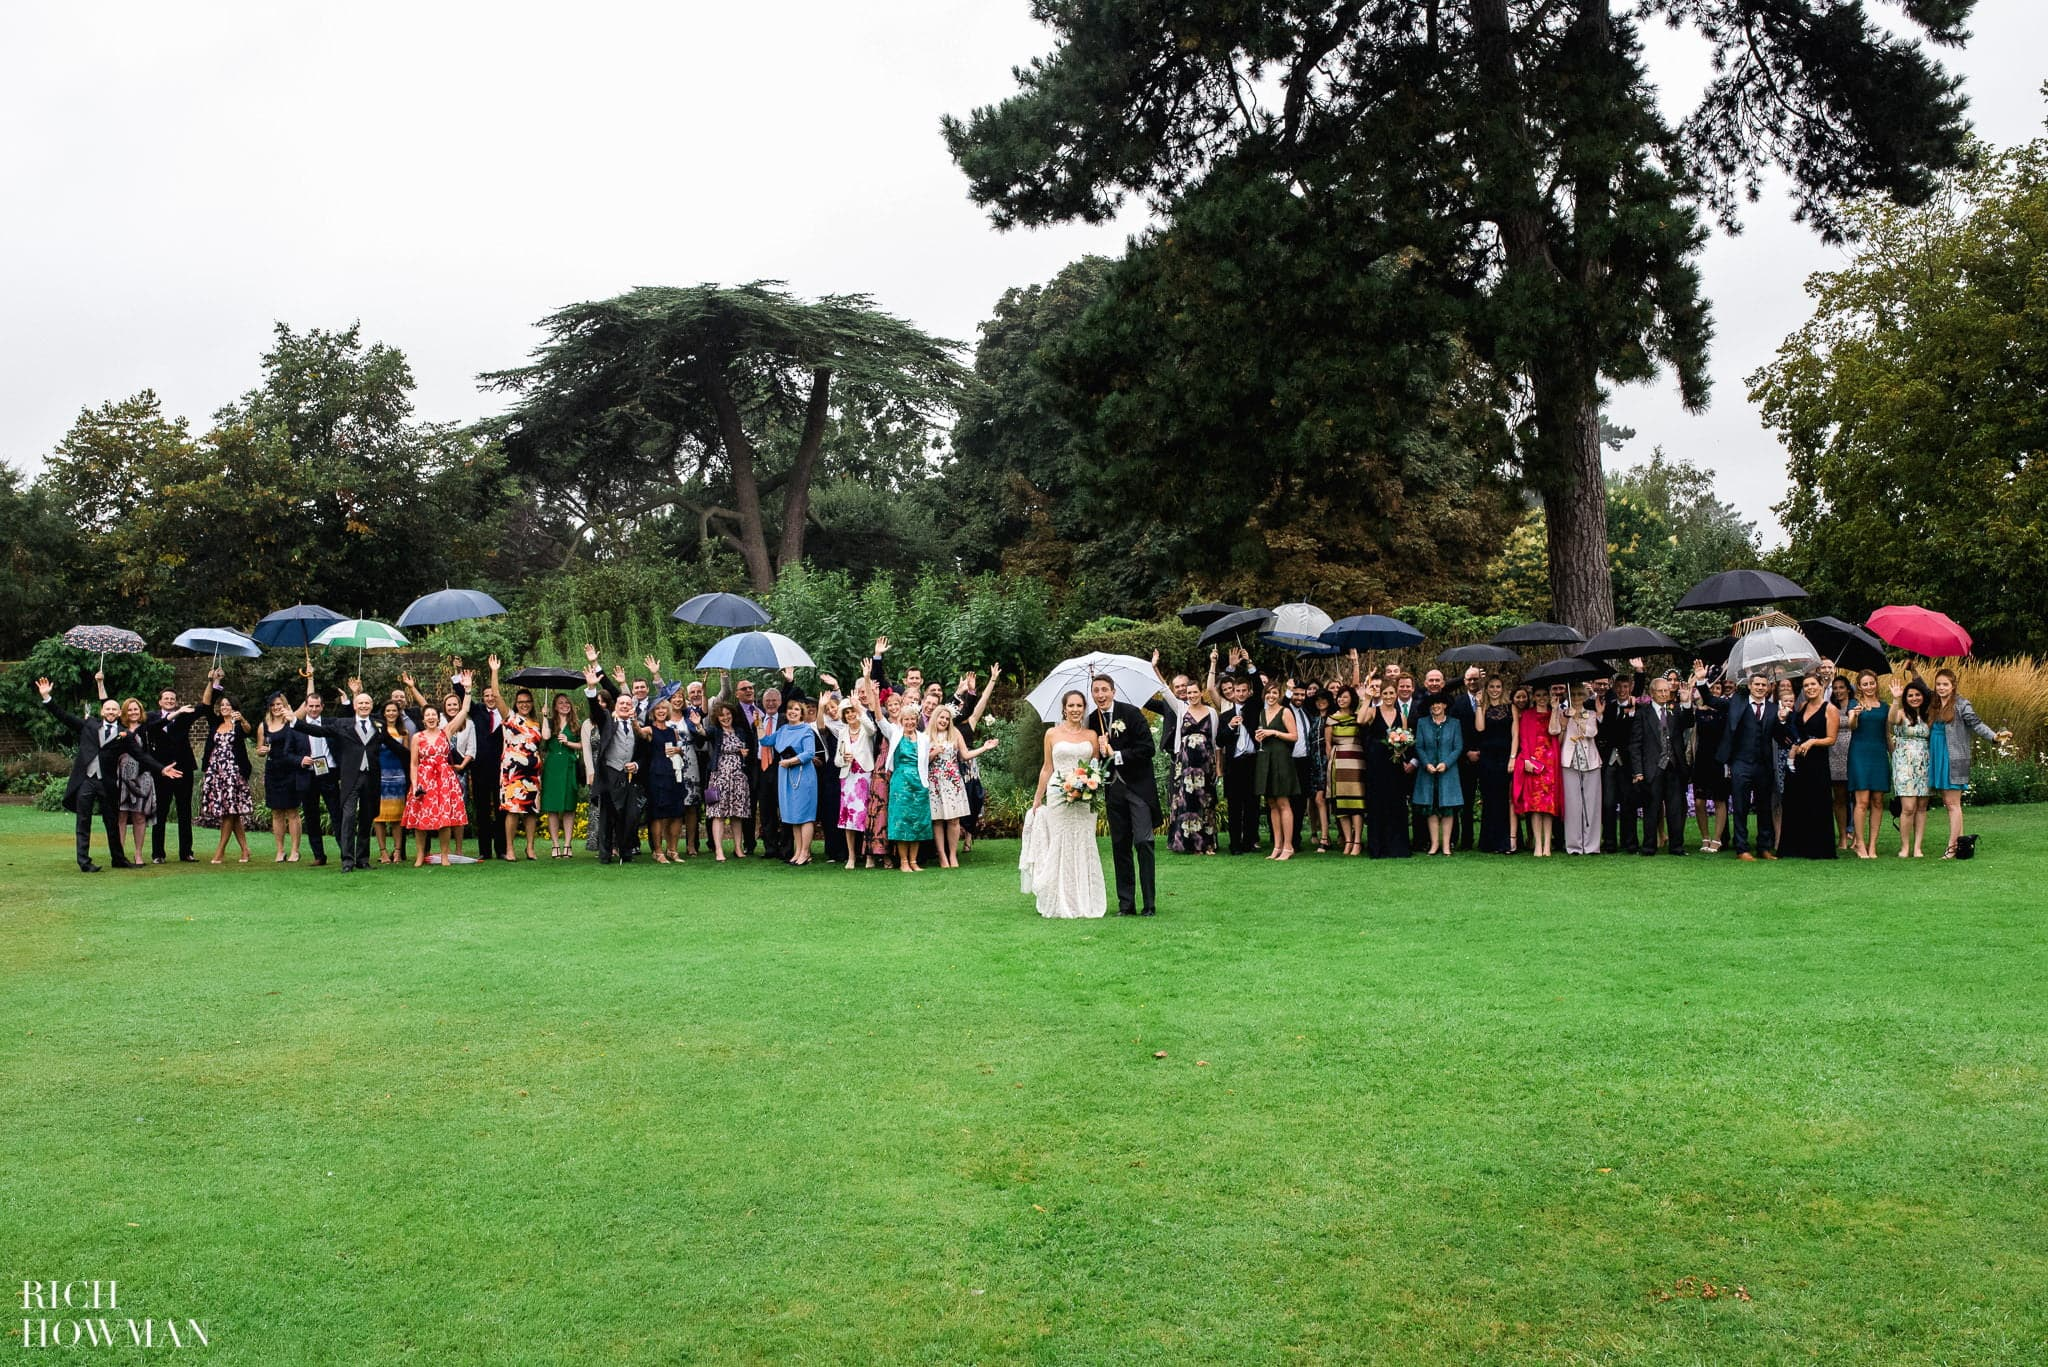 Wedding Group Photograph in the Rain at Kew Gardens